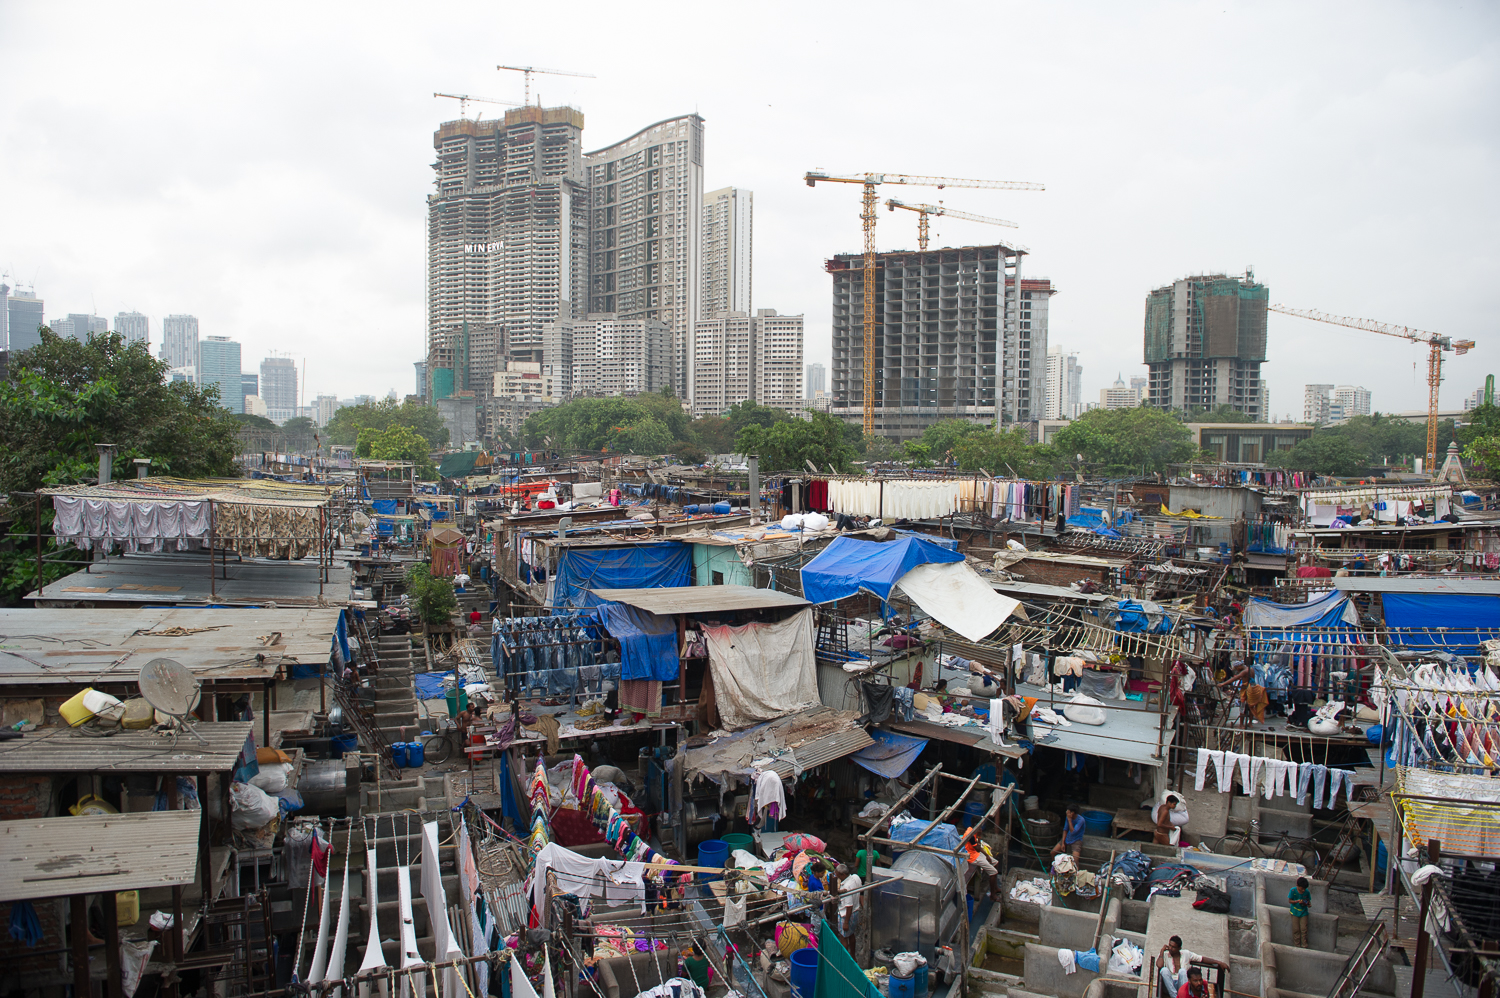 Dhobi Ghat, the biggest outdoor laundry service in the world, located int the Mahalaxmi area of Mumbai, 2019